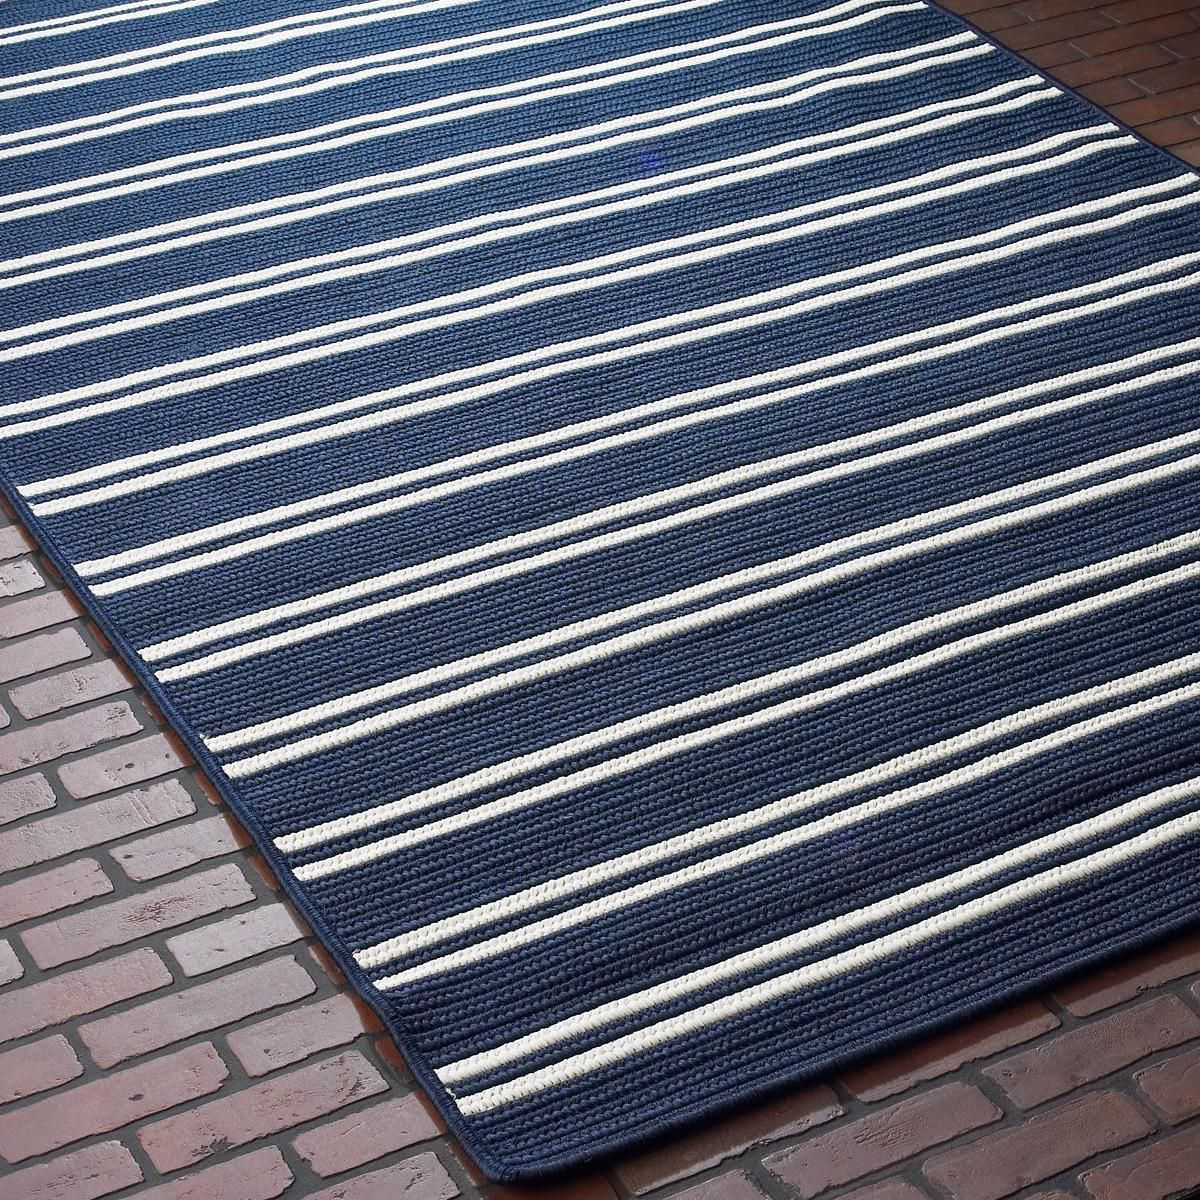 Racing Stripe Outdoor Rug In Navy Black Or Turquoise Runner For The Kitchen